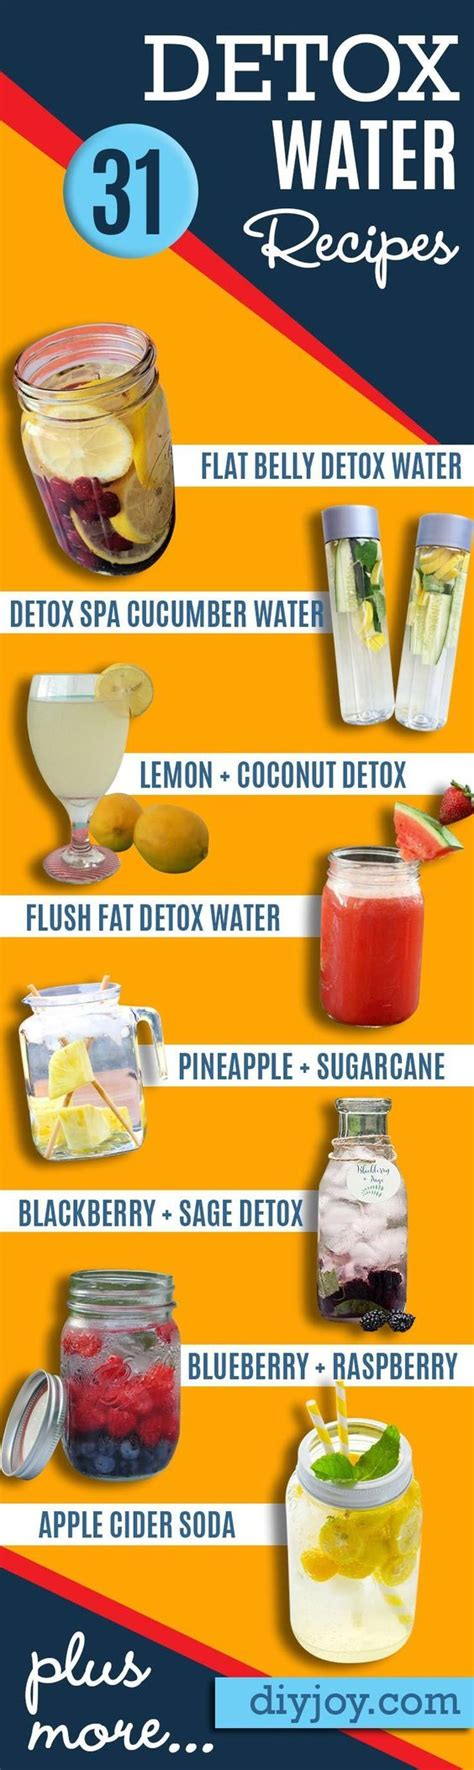 Detox Water Recipes For Belly by Health Diet Weight Loss Detox And Detox Waters On